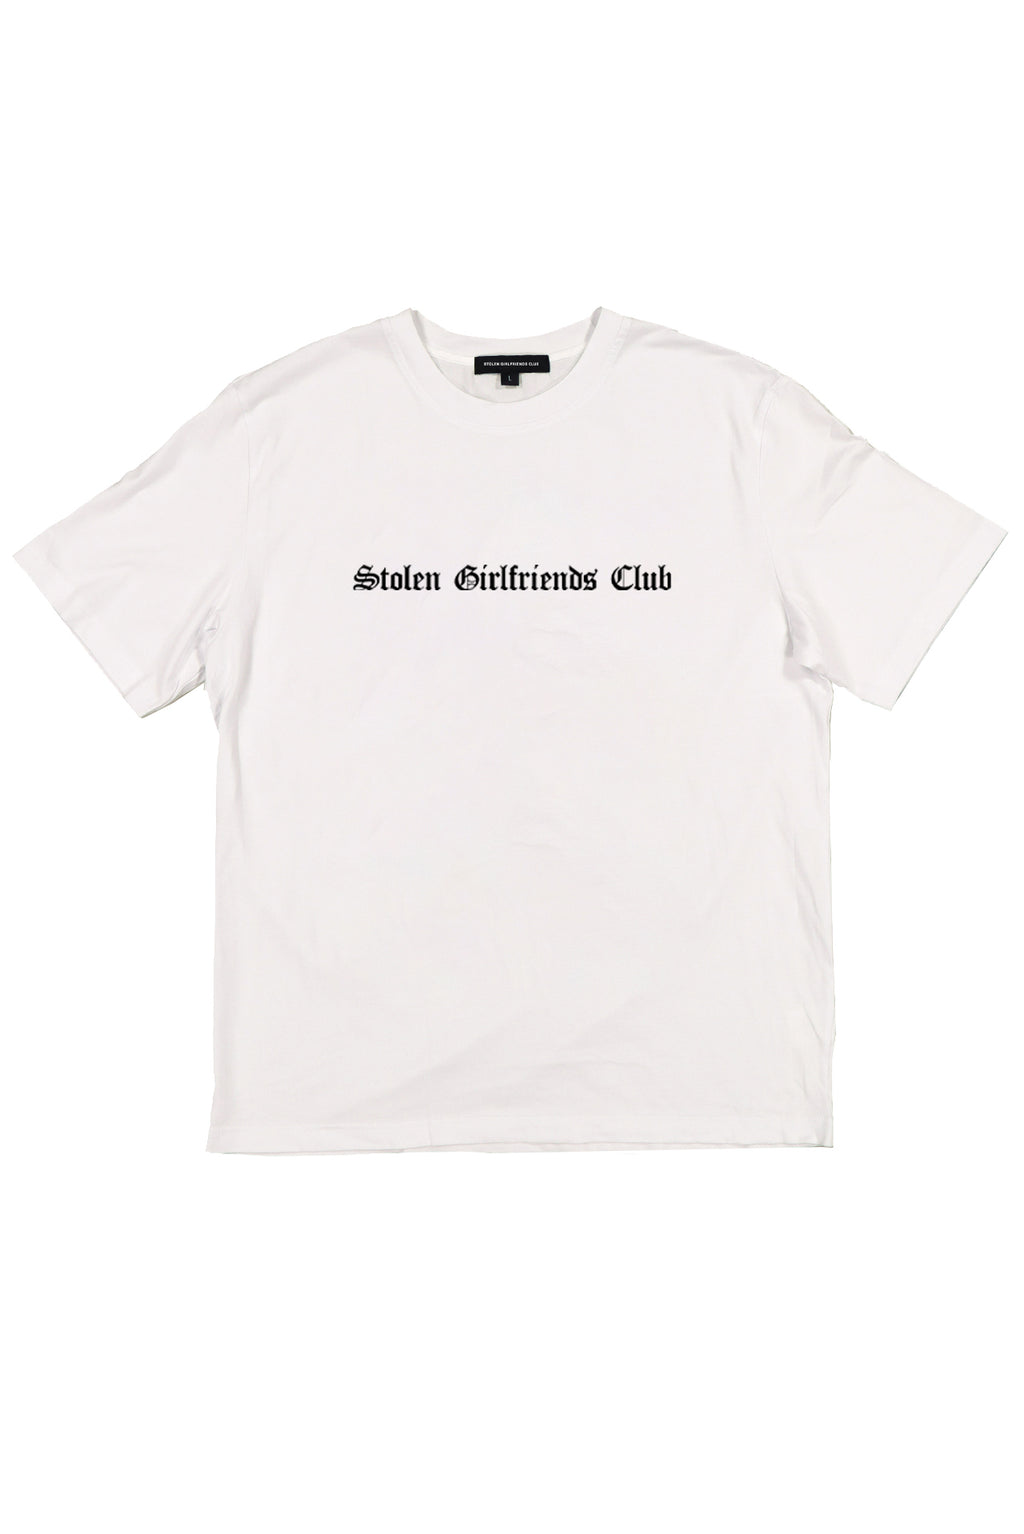 STOLEN GIRLFRIENDS CLUB  //  UNISEX Gothic Logo Tee WHITE